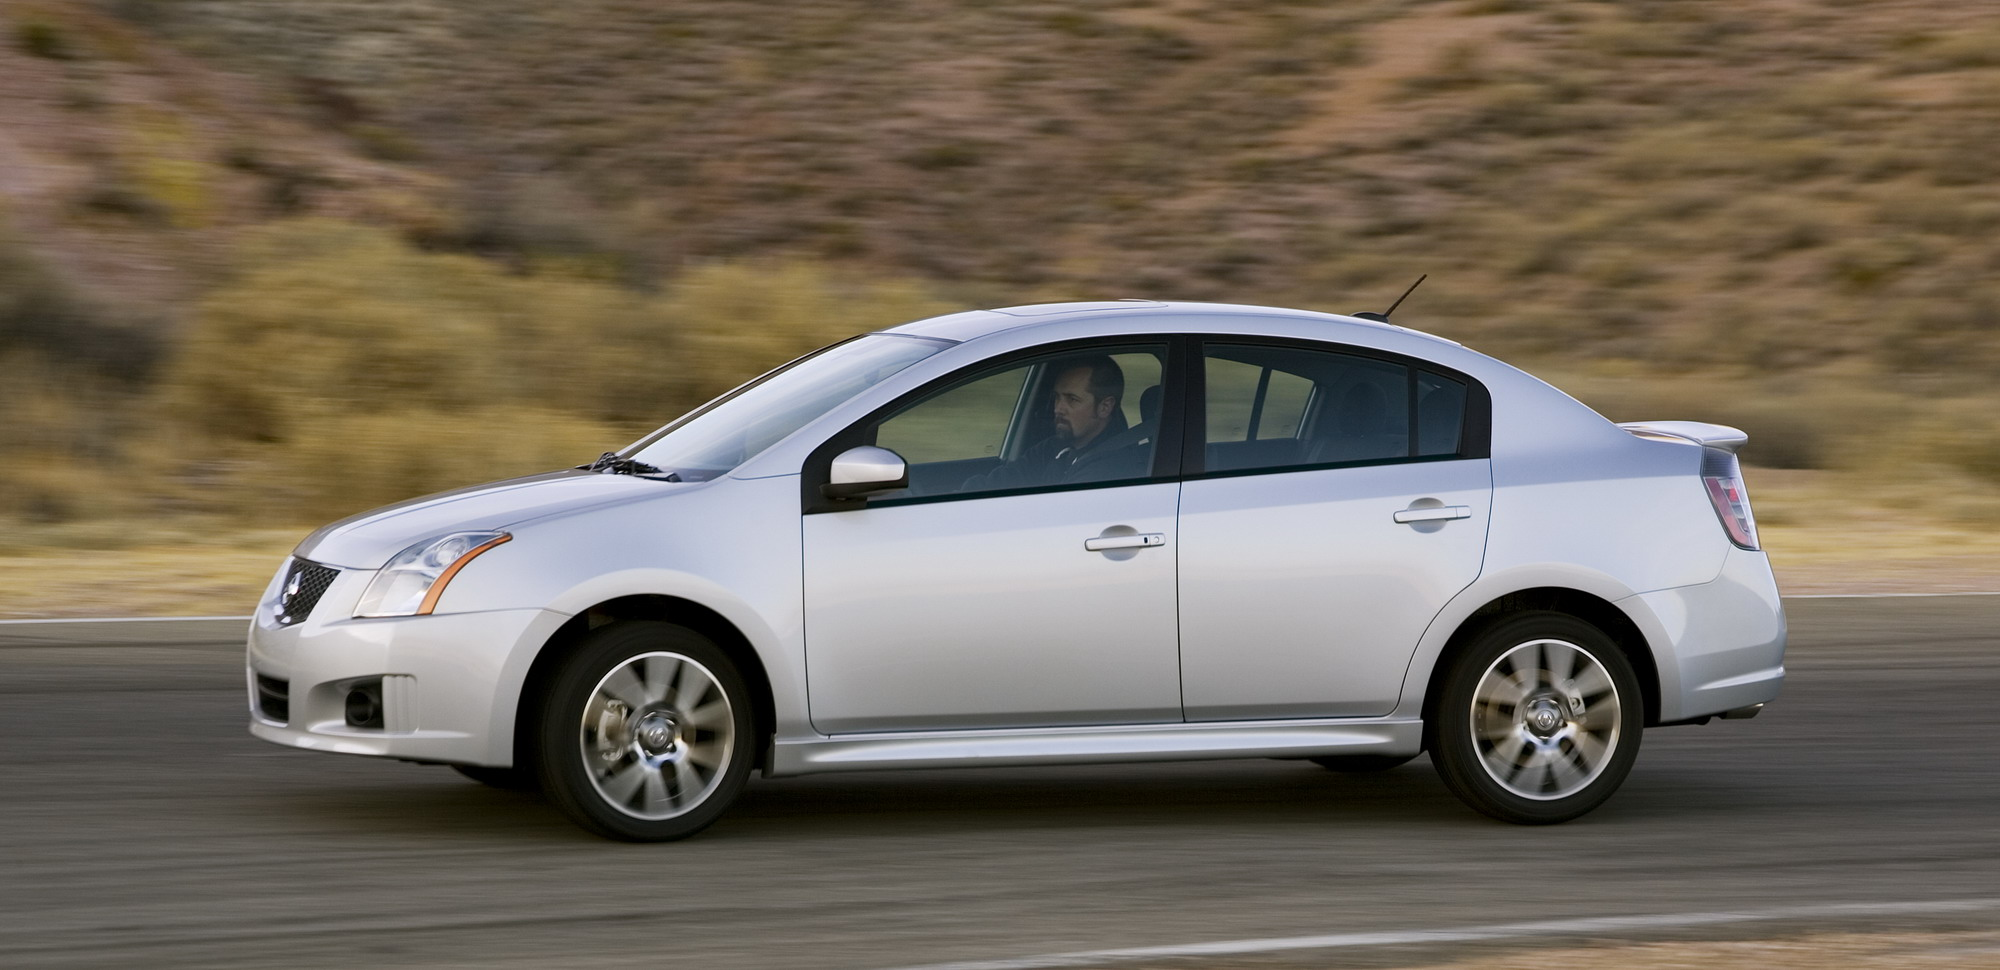 2011 Nissan Sentra SE R | Top Speed. »